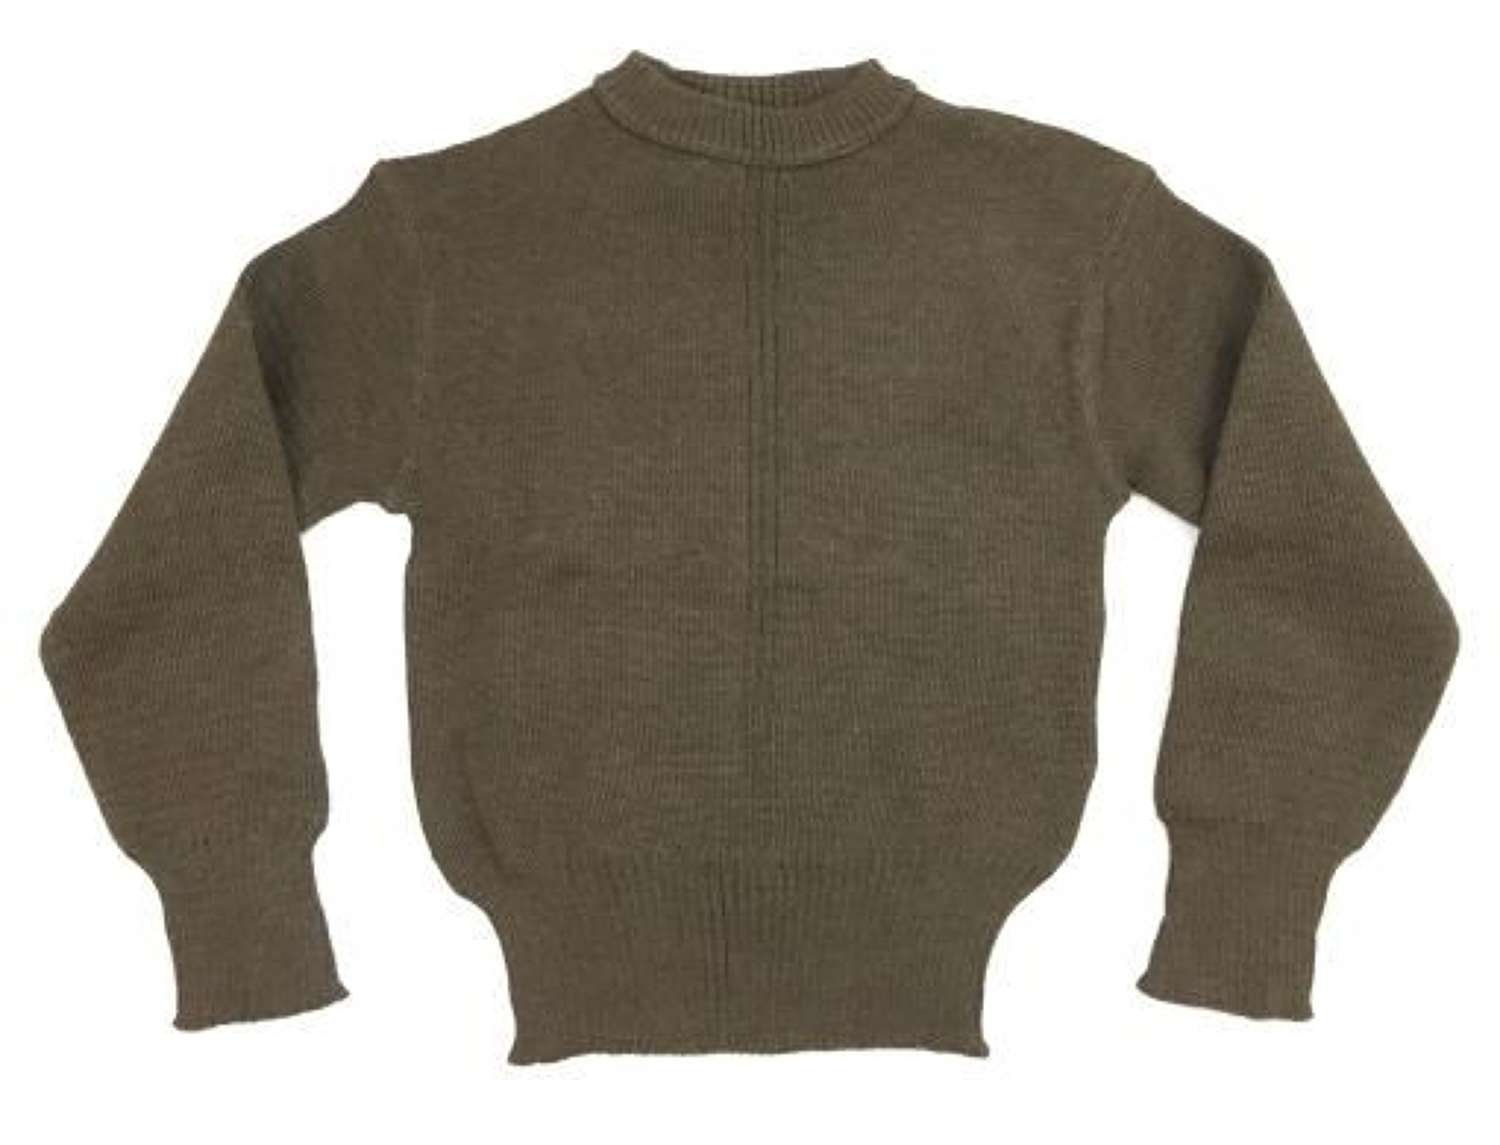 Original 1950s French Army Crew Neck Green Wool Jumper